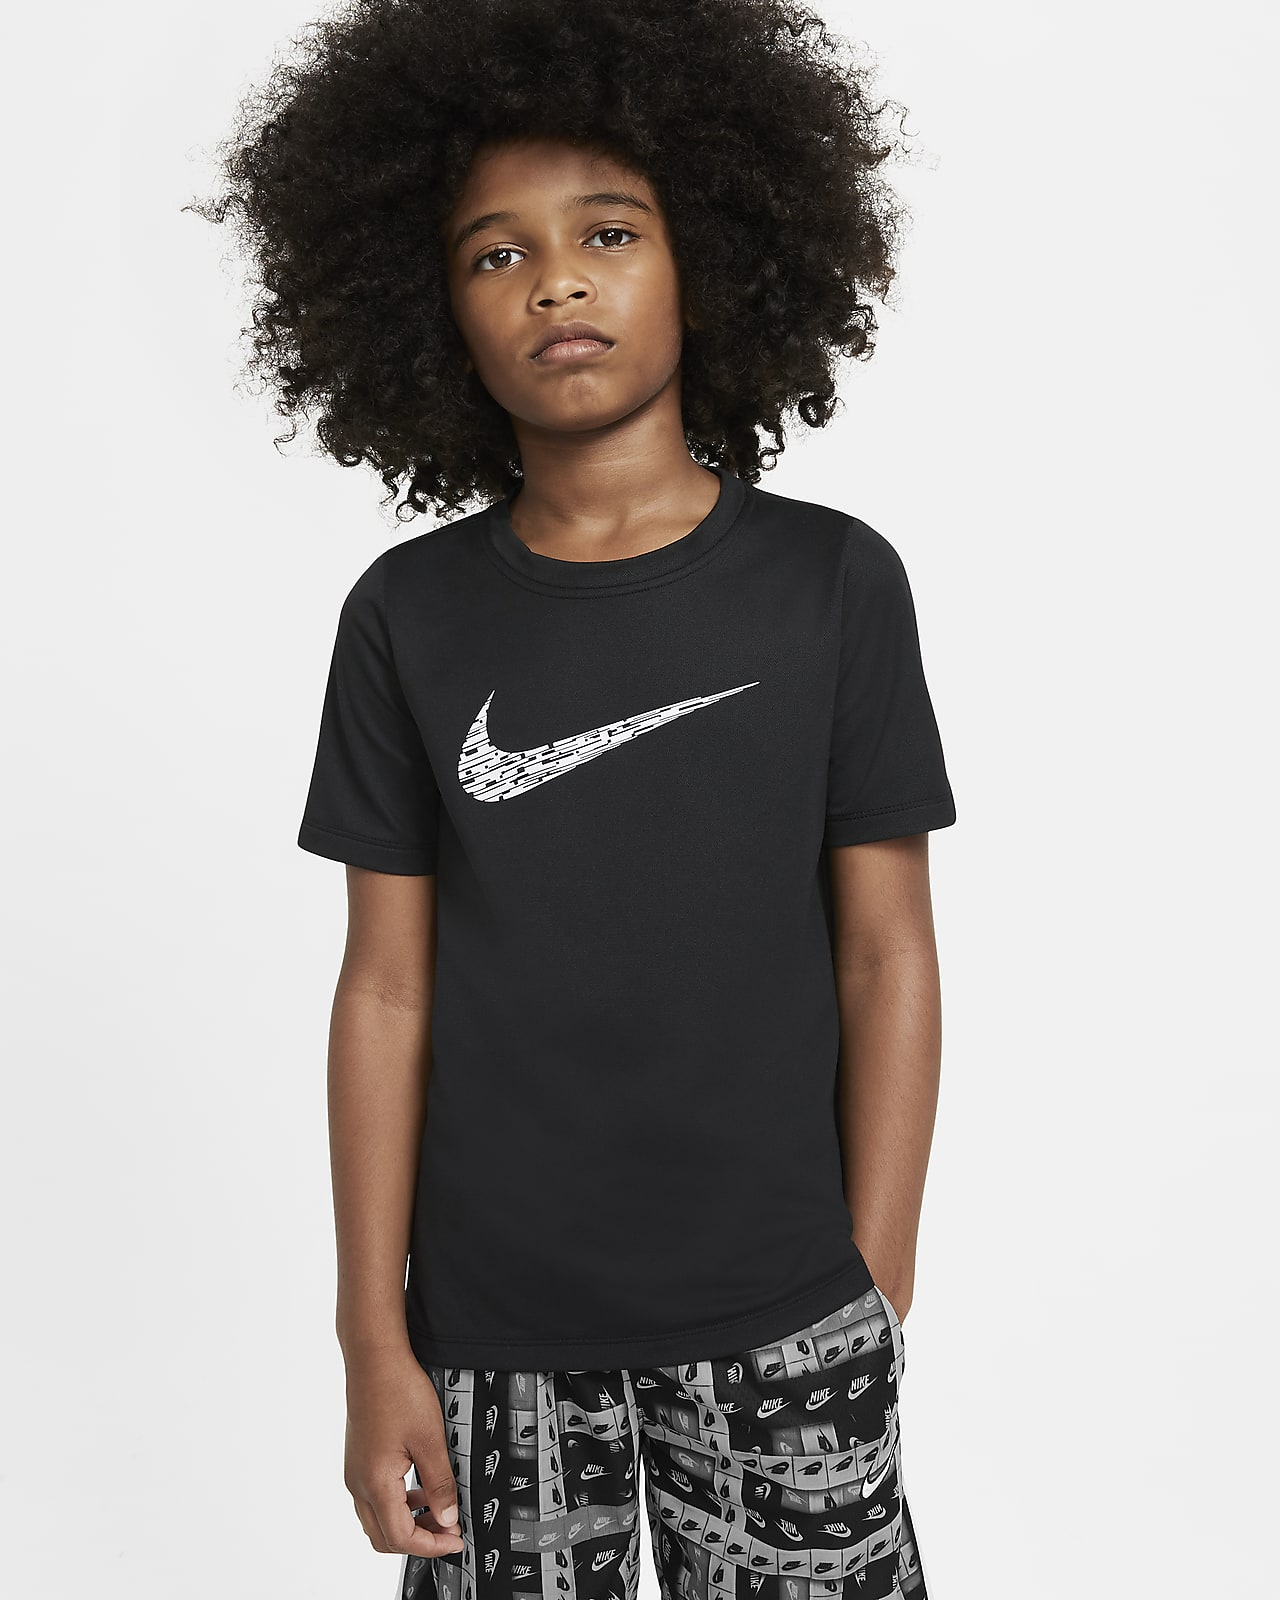 Nike Older Kids' (Boys') Short-Sleeve Training Top